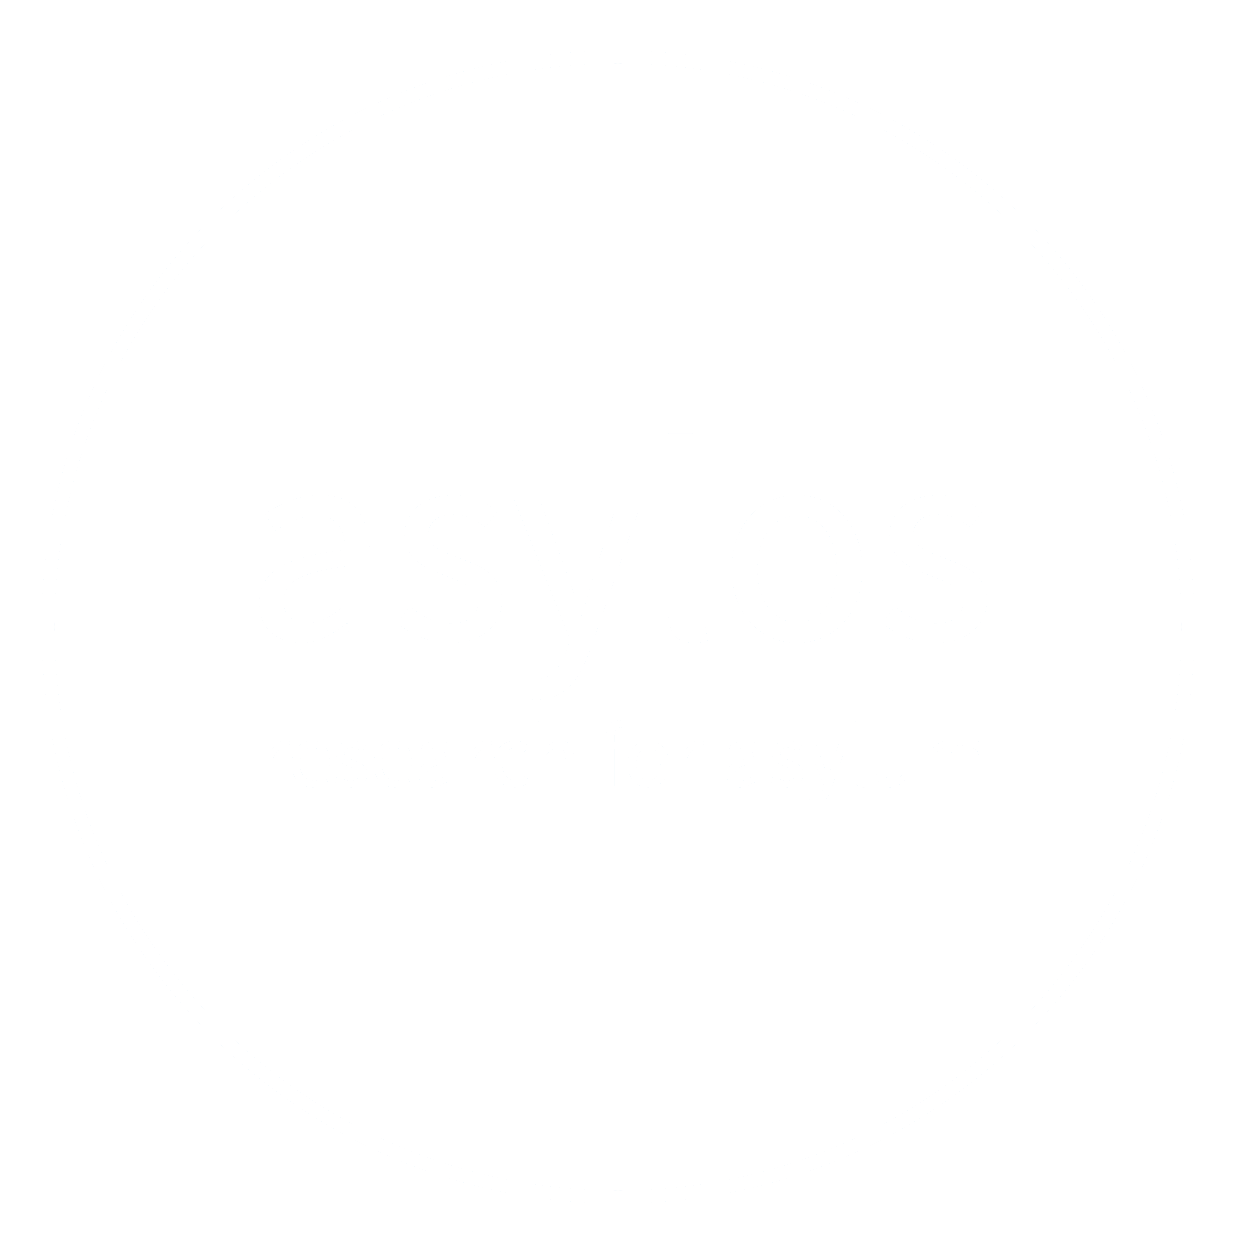 Resources of Asylos